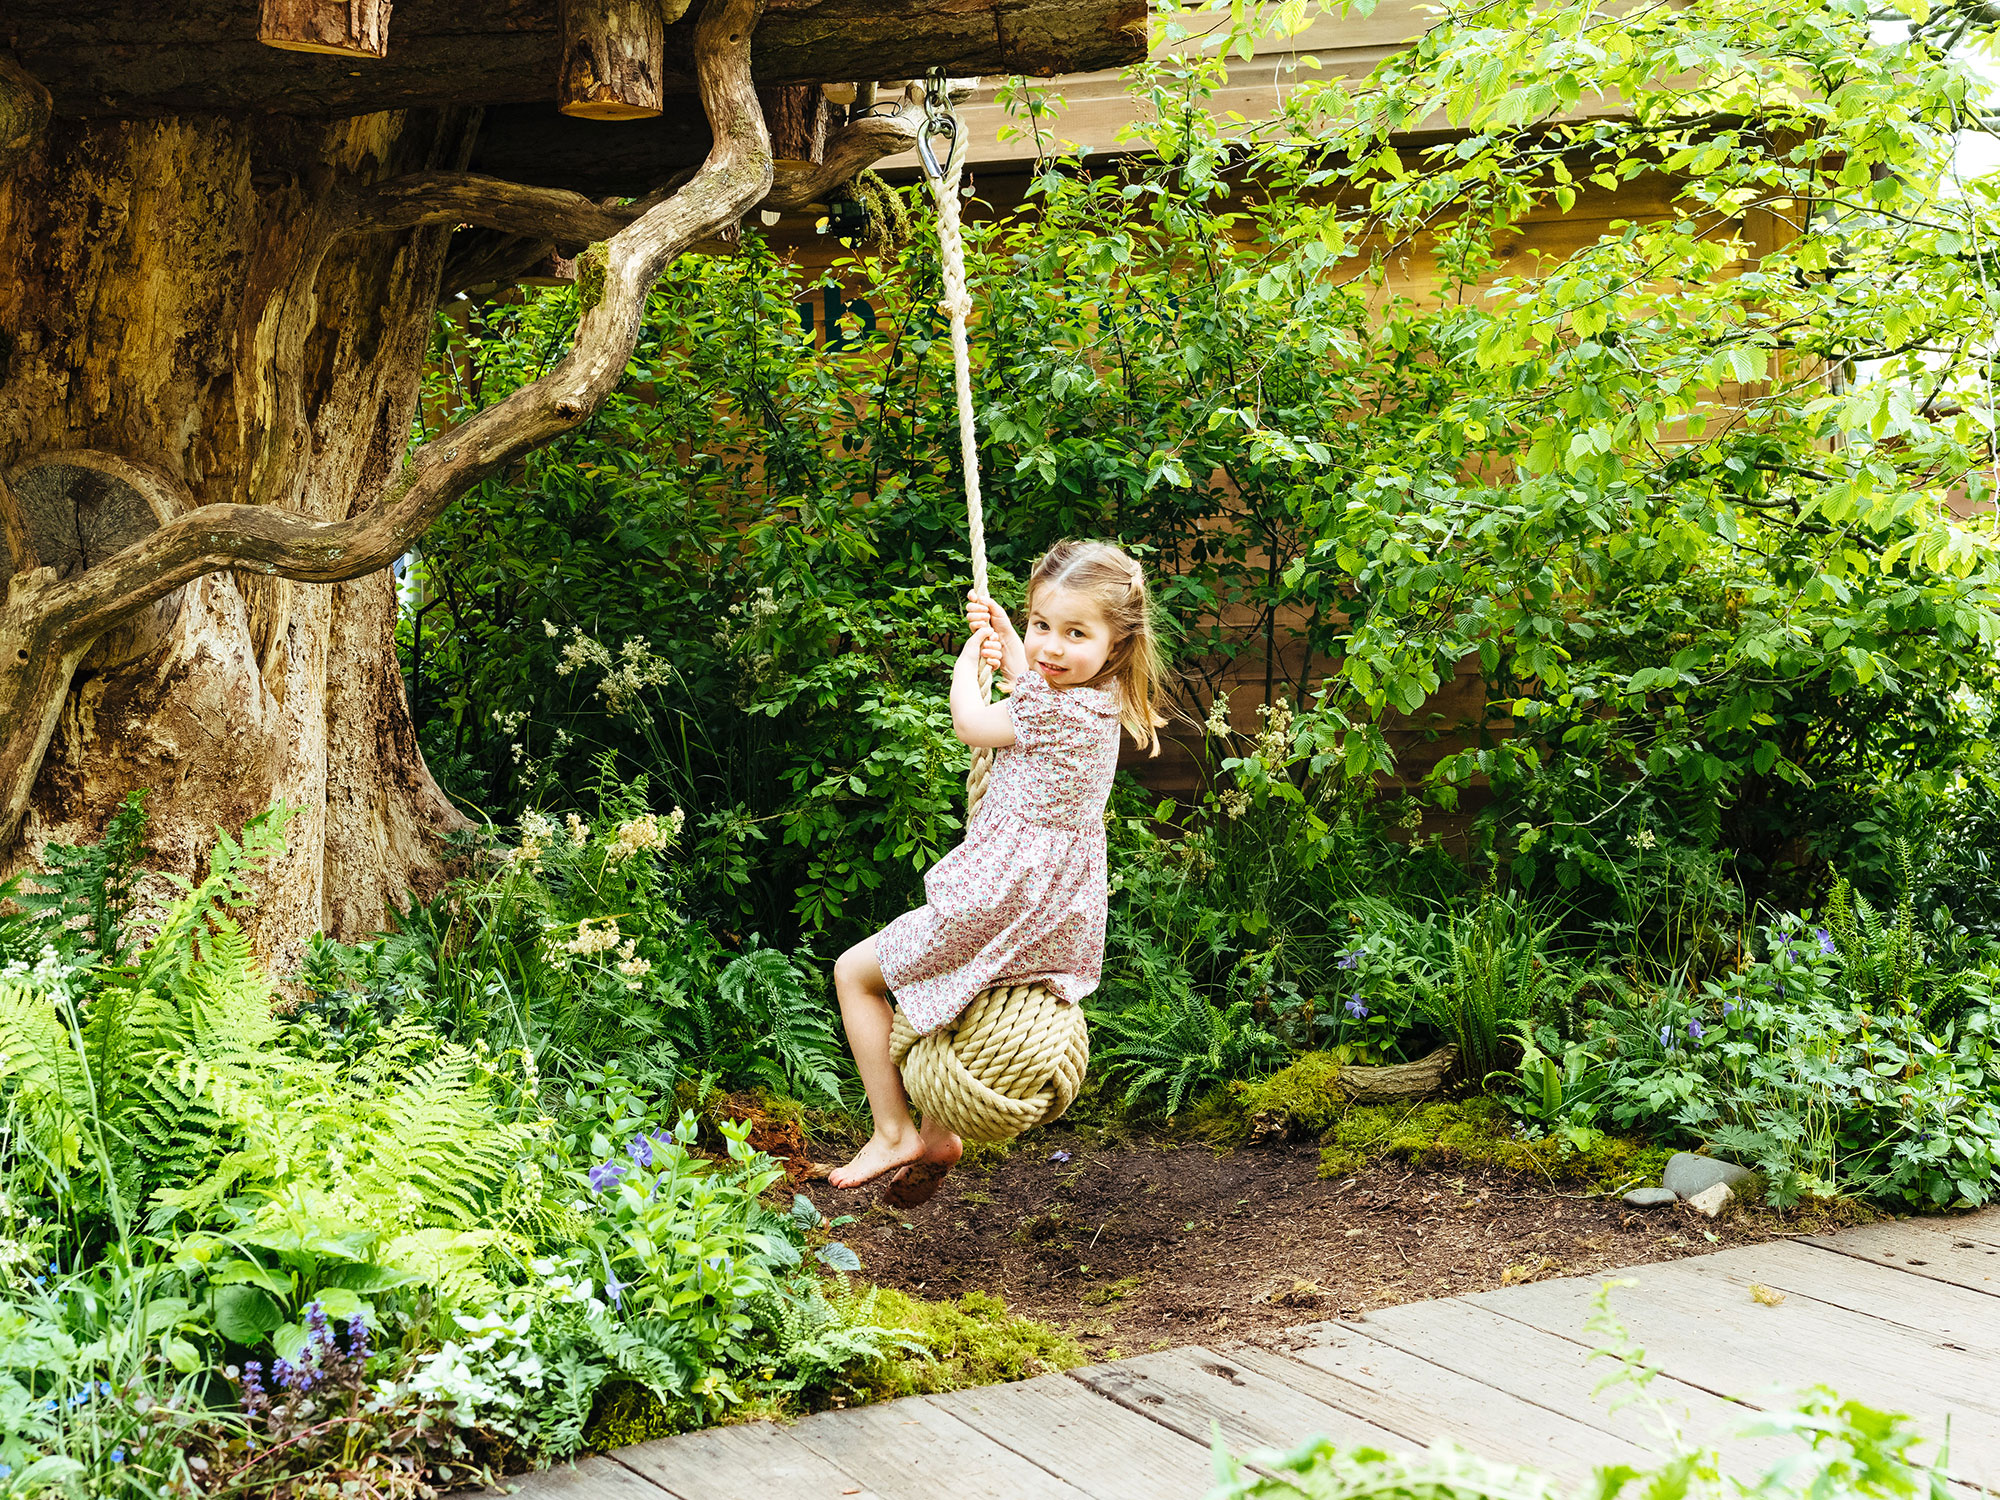 Prince William Princess Charlotte Nickname - Princess Charlotte swings from a tree in the Adam White and Andree Davies co-designed garden ahead of the RHS Chelsea Flower Show in London on May 19, 2019.